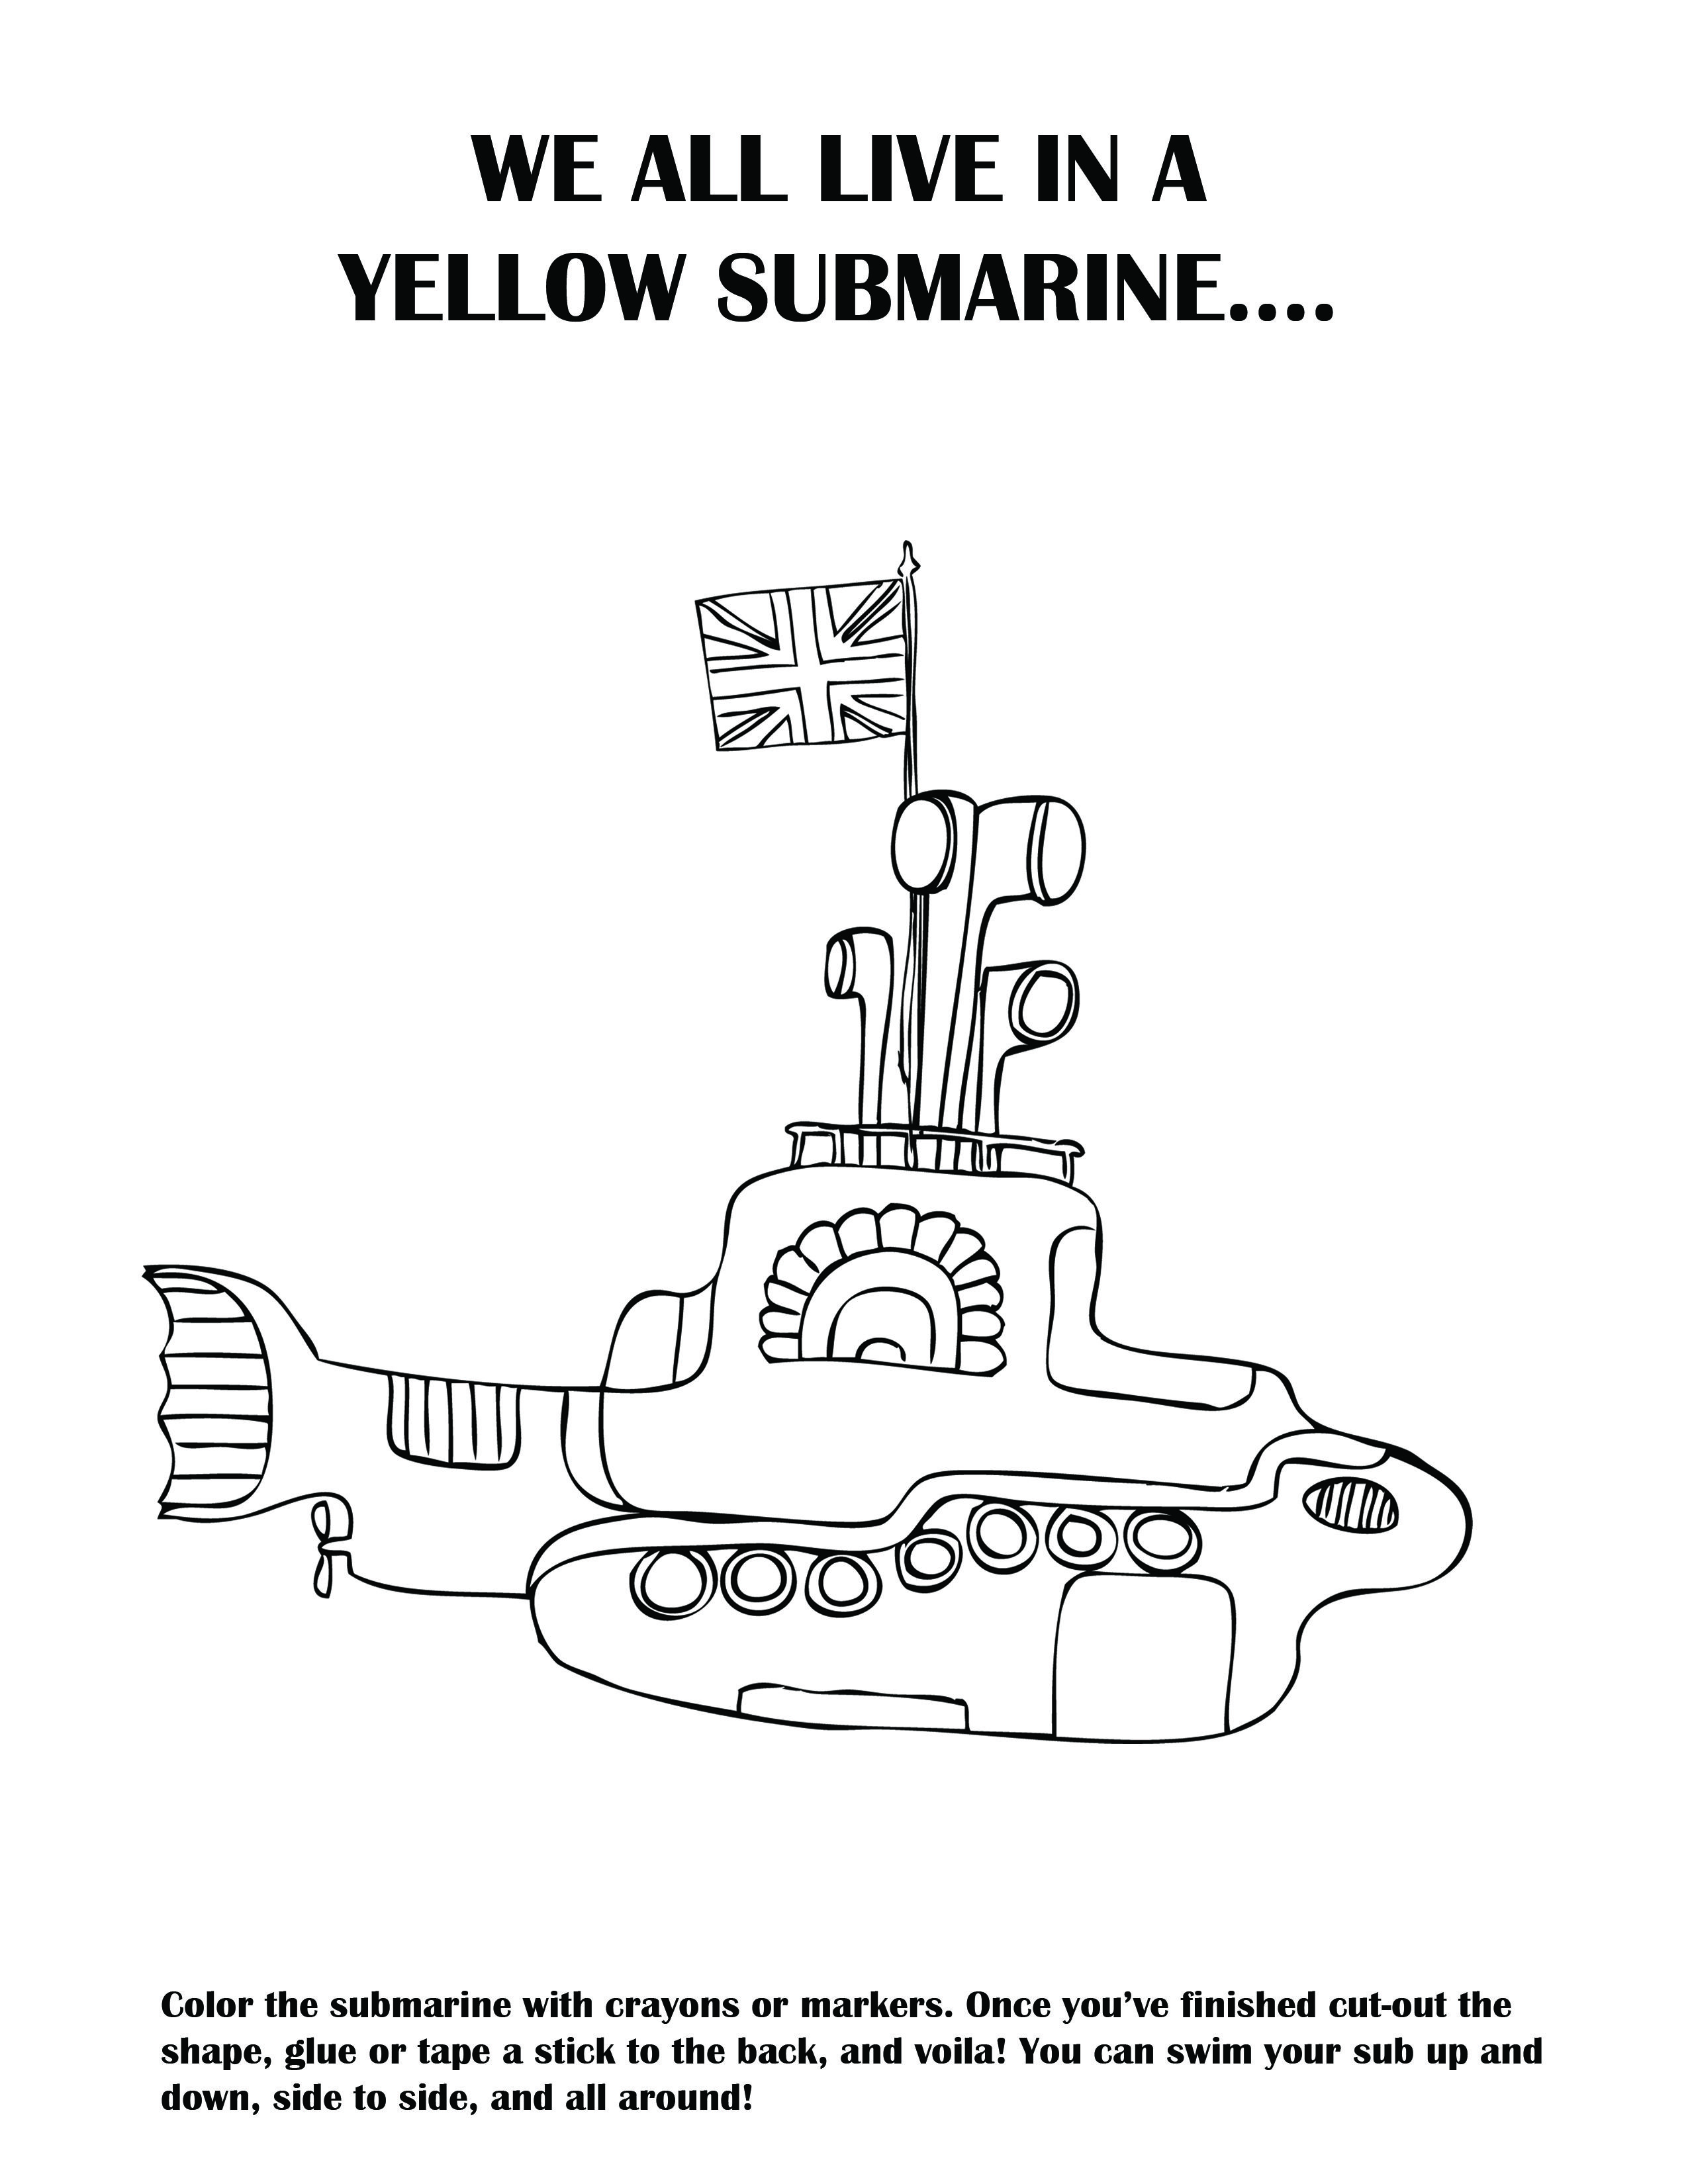 Diy A Yellow Submarine I Made This Activity Sheet For My